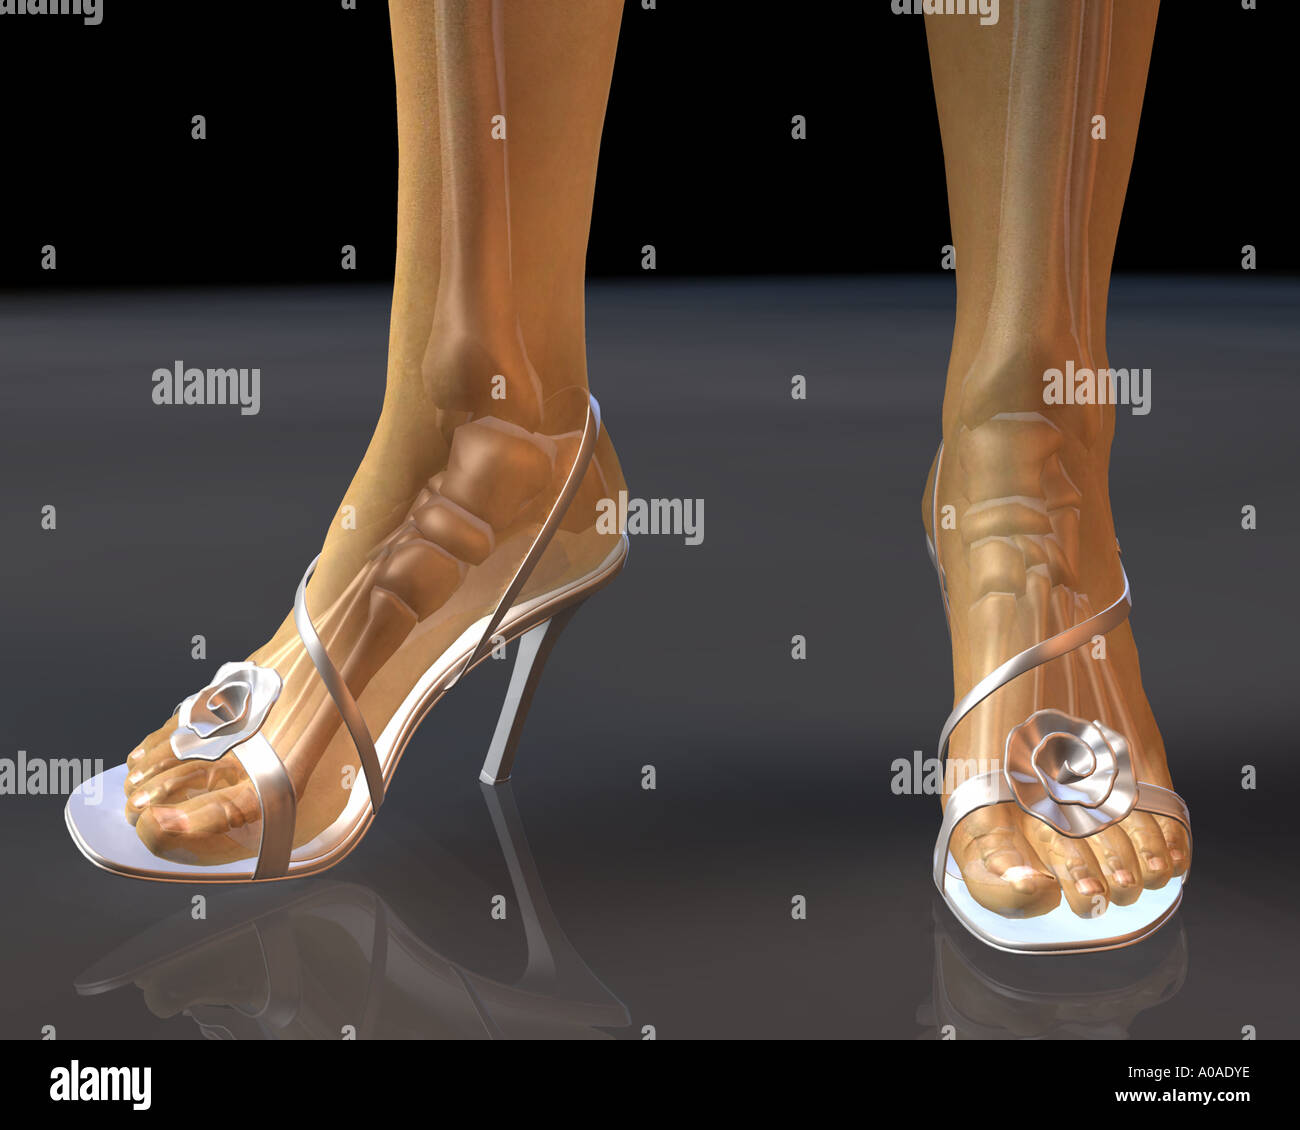 hight resolution of illustrative diagram showing female feet and legs in high heel shoes with skeleton showing through transluscent skin